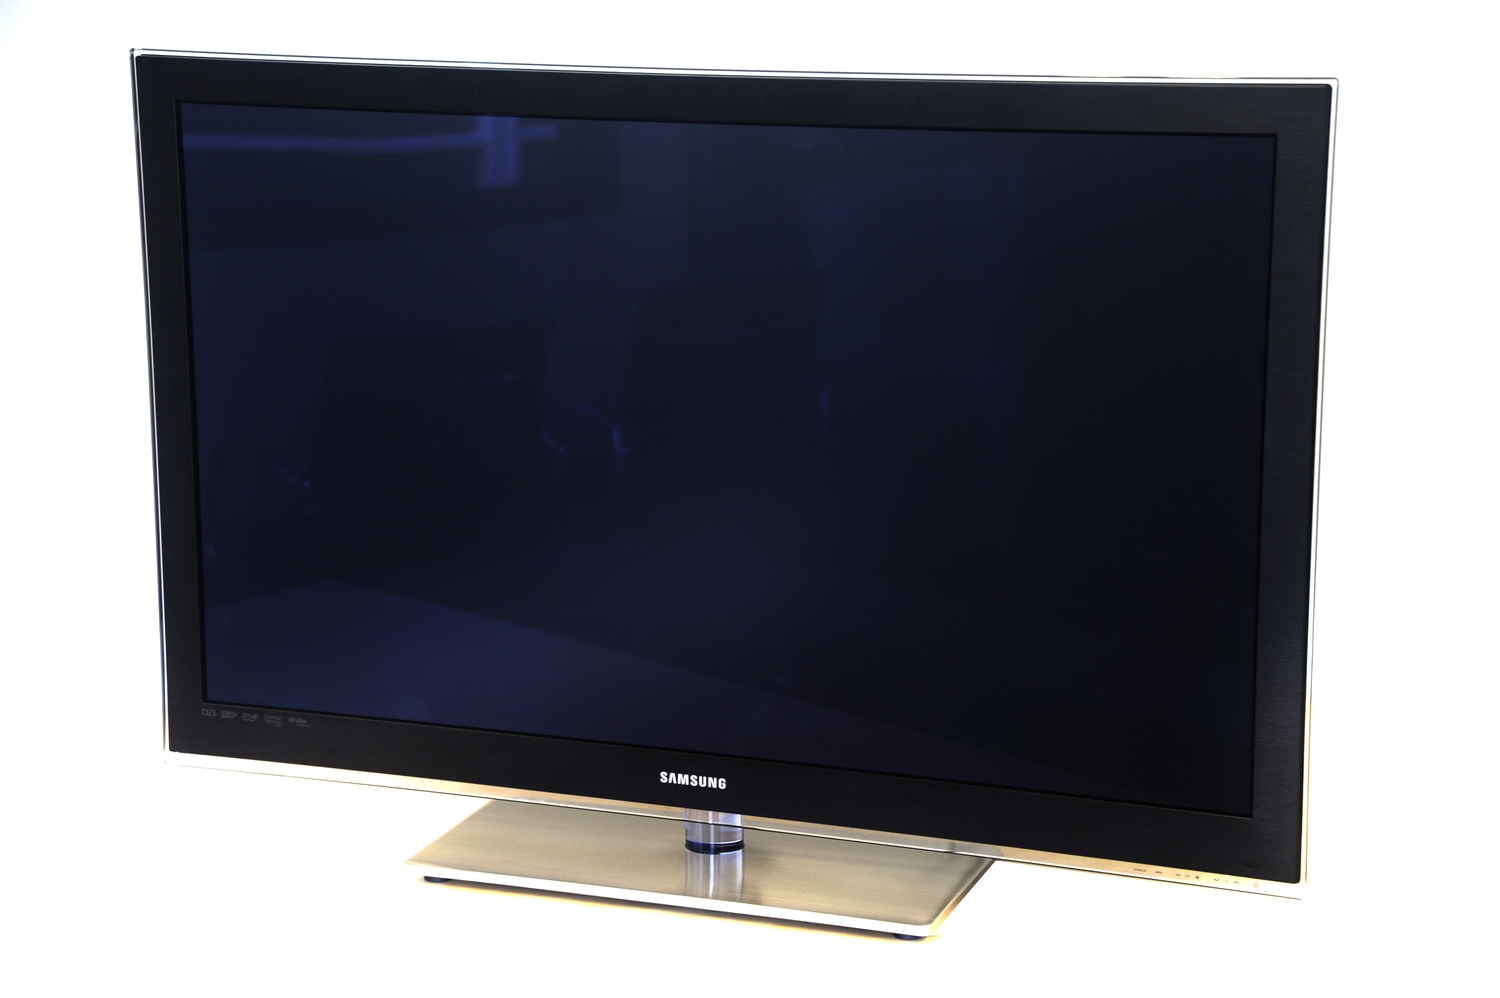 samsung series 7 ps58c7000 review this excellent 58in 3d television from samsung combines the. Black Bedroom Furniture Sets. Home Design Ideas